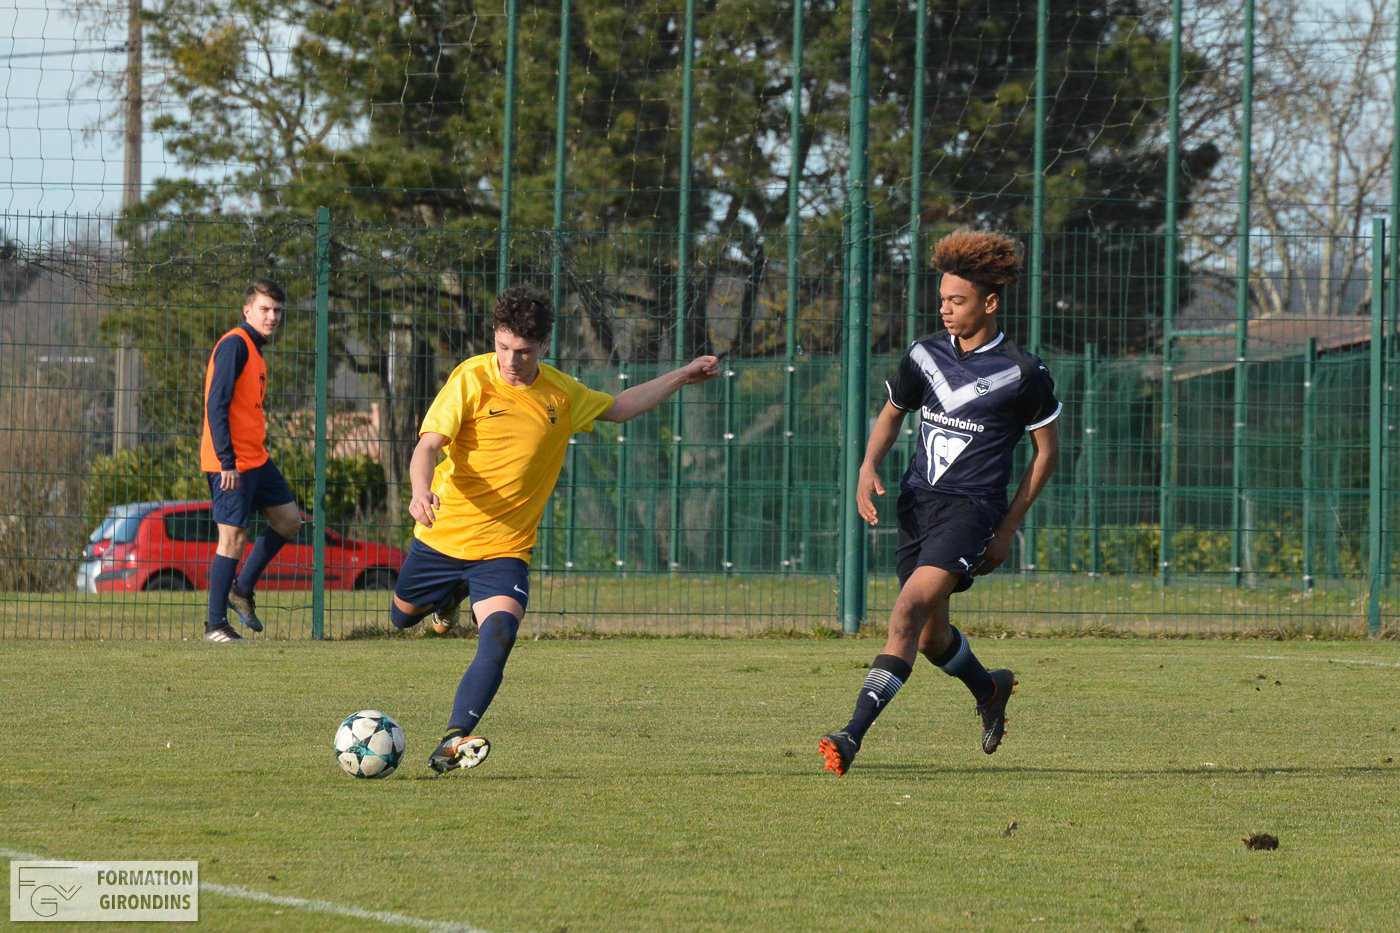 Cfa Girondins : Un point de pris à Marmande - Formation Girondins